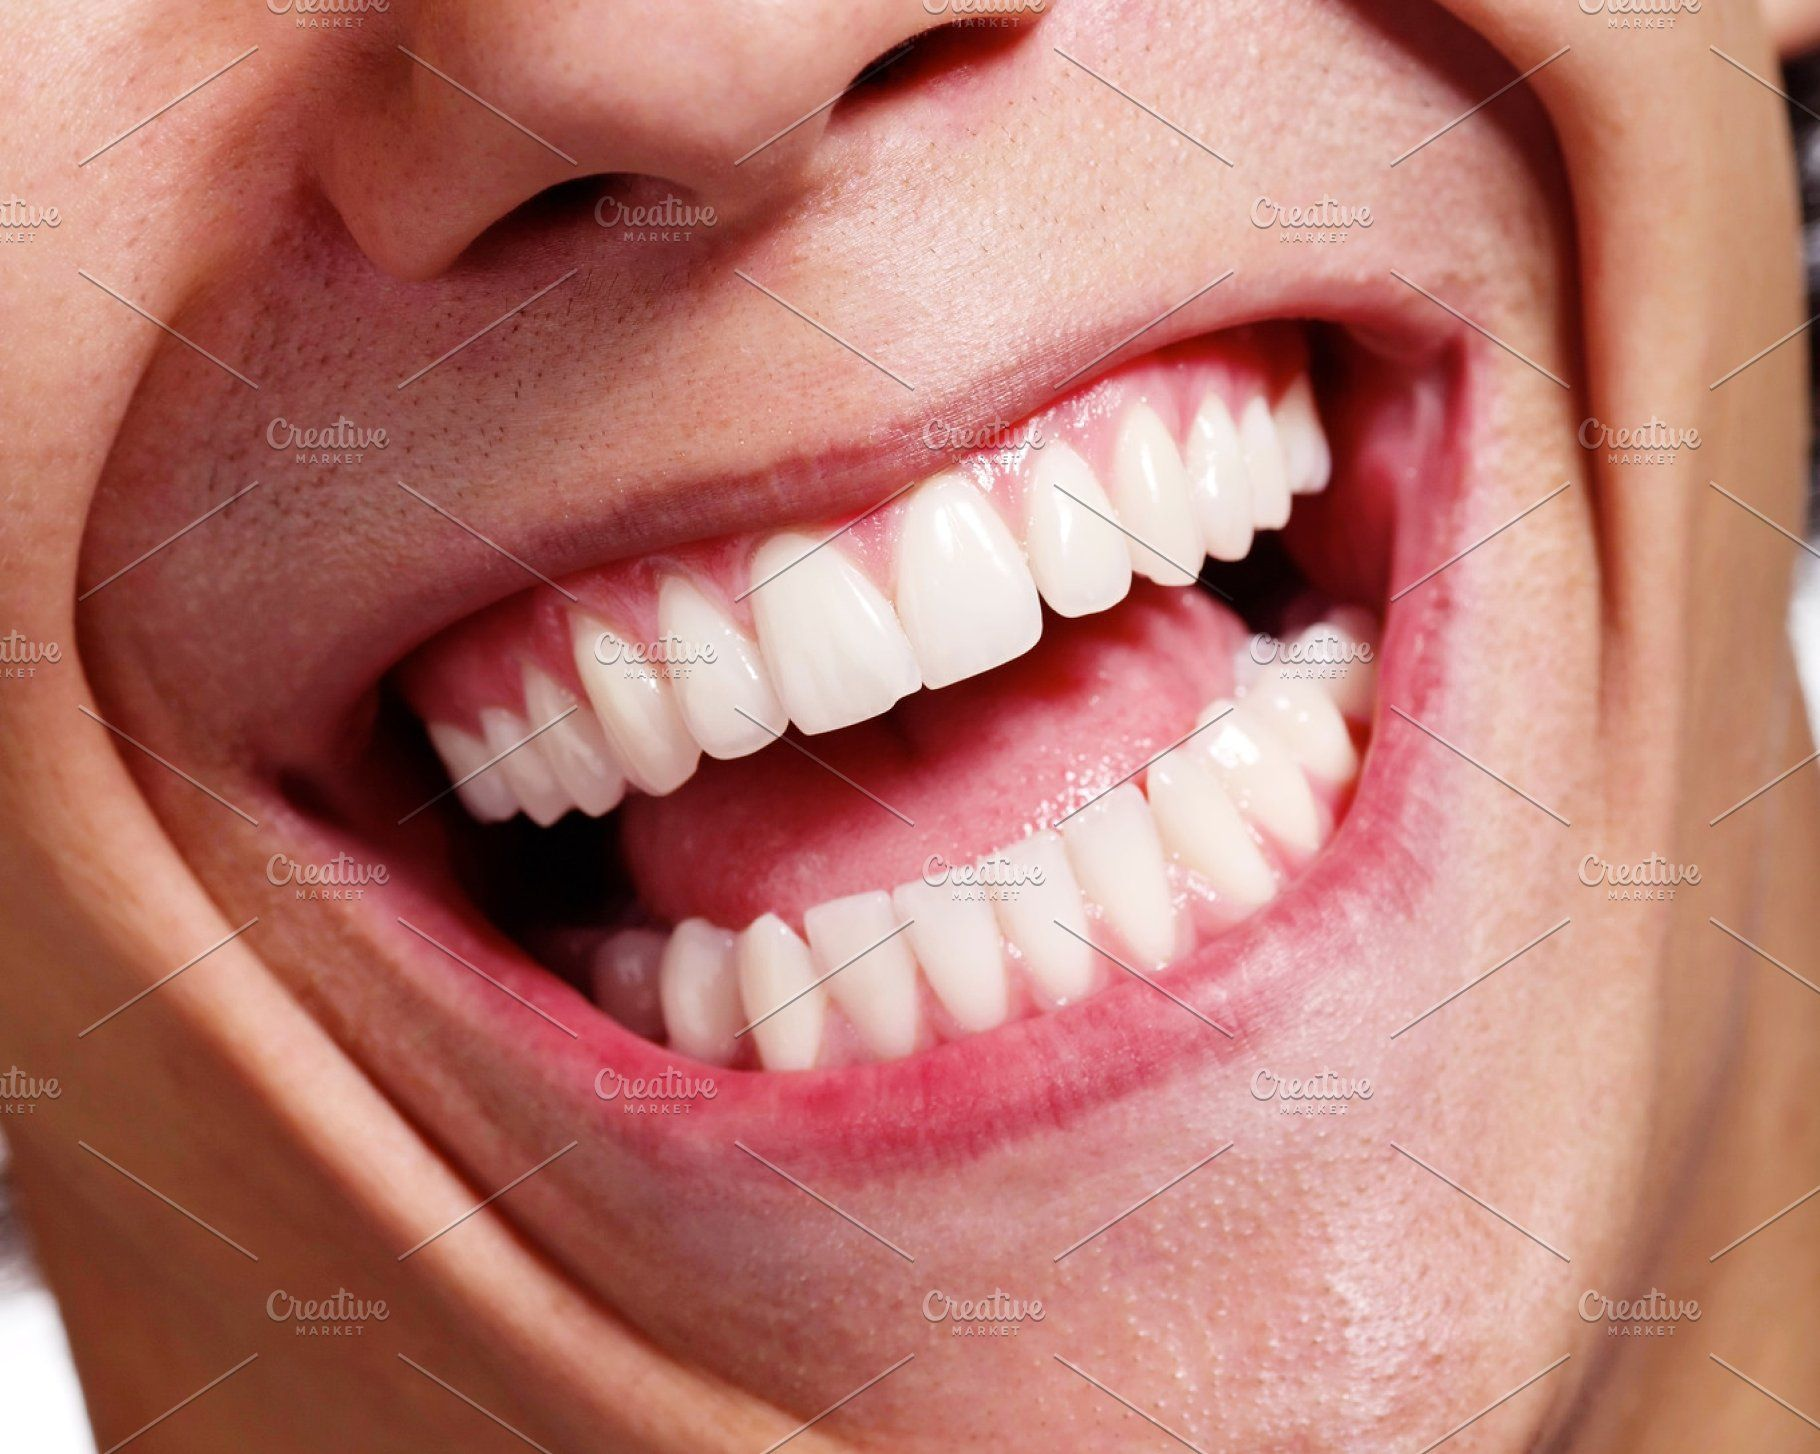 Laughing Mouth Closeup Smile Photo Laughing Face Mouth